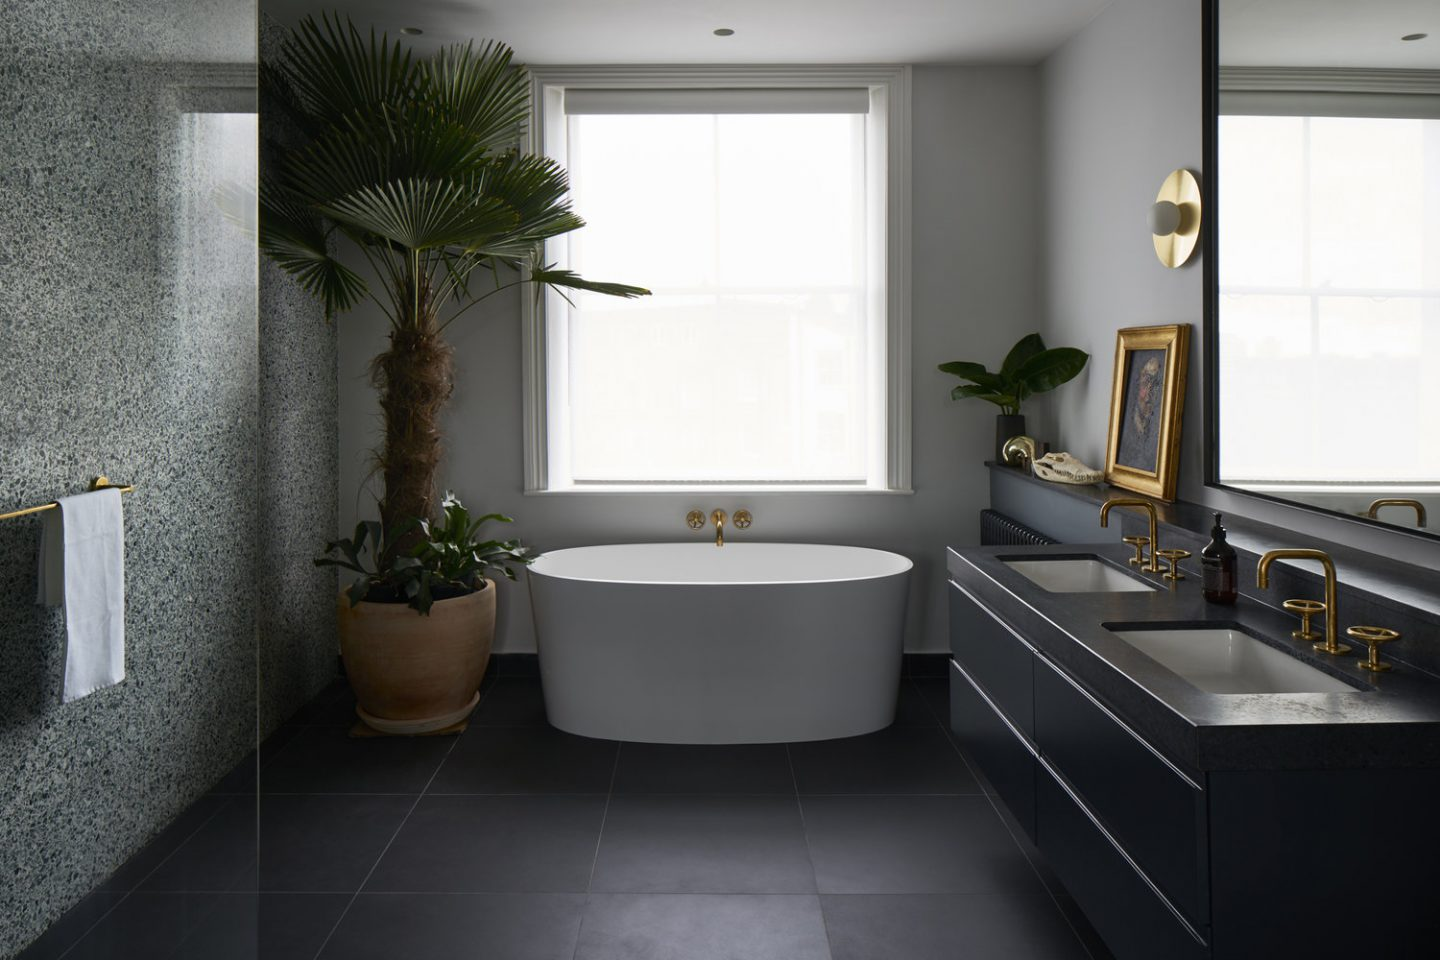 How to write an intriguing blog post headline, blogger tips, image of bathroom design with terrazzo